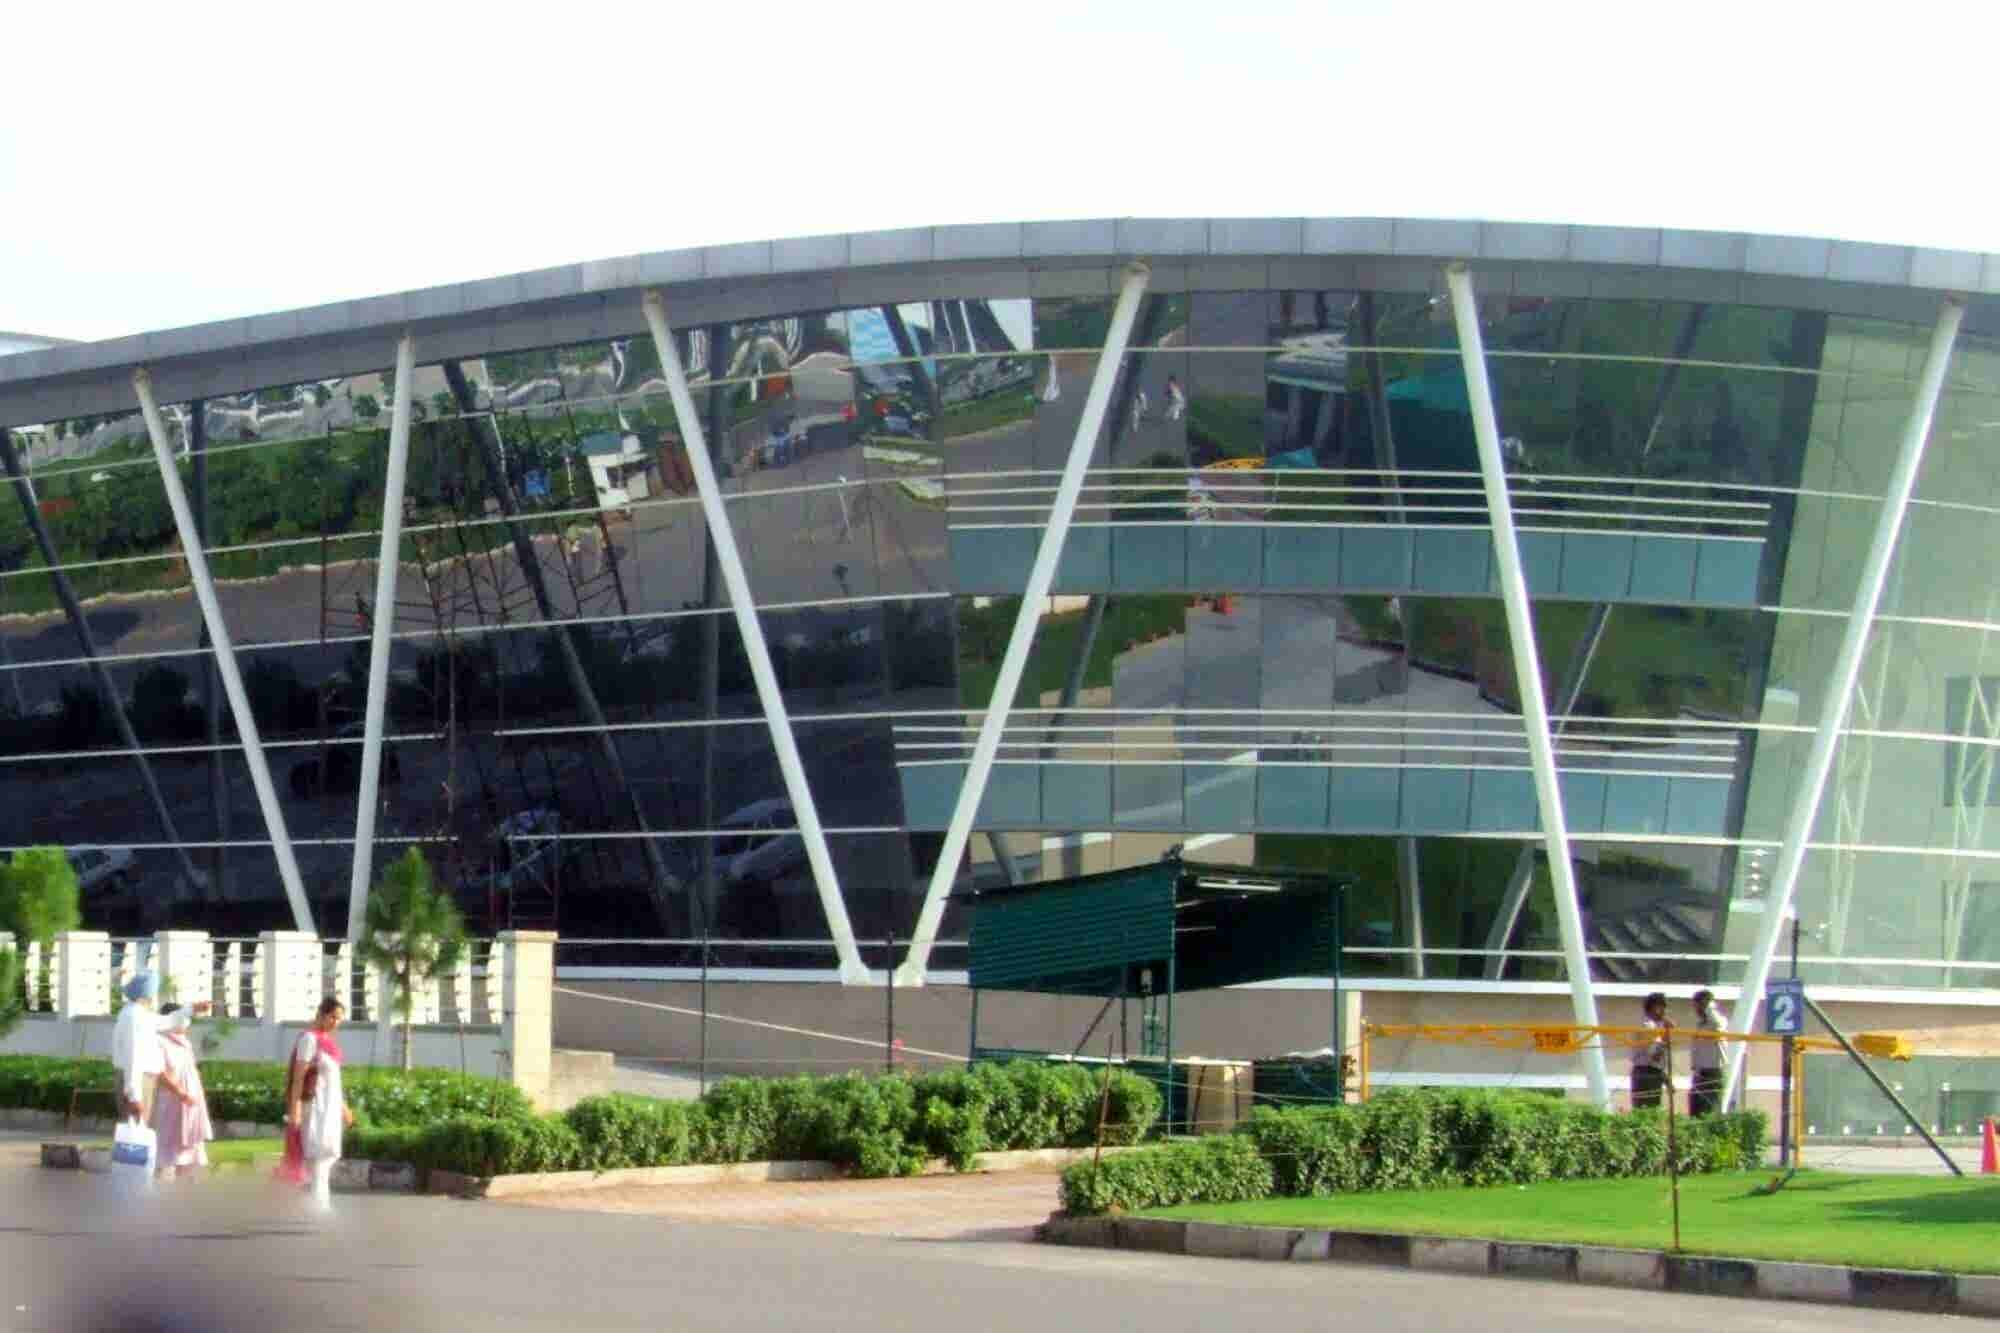 Chandigarh's Transition from the City of Bureaucrats to North India's Corporate Capital